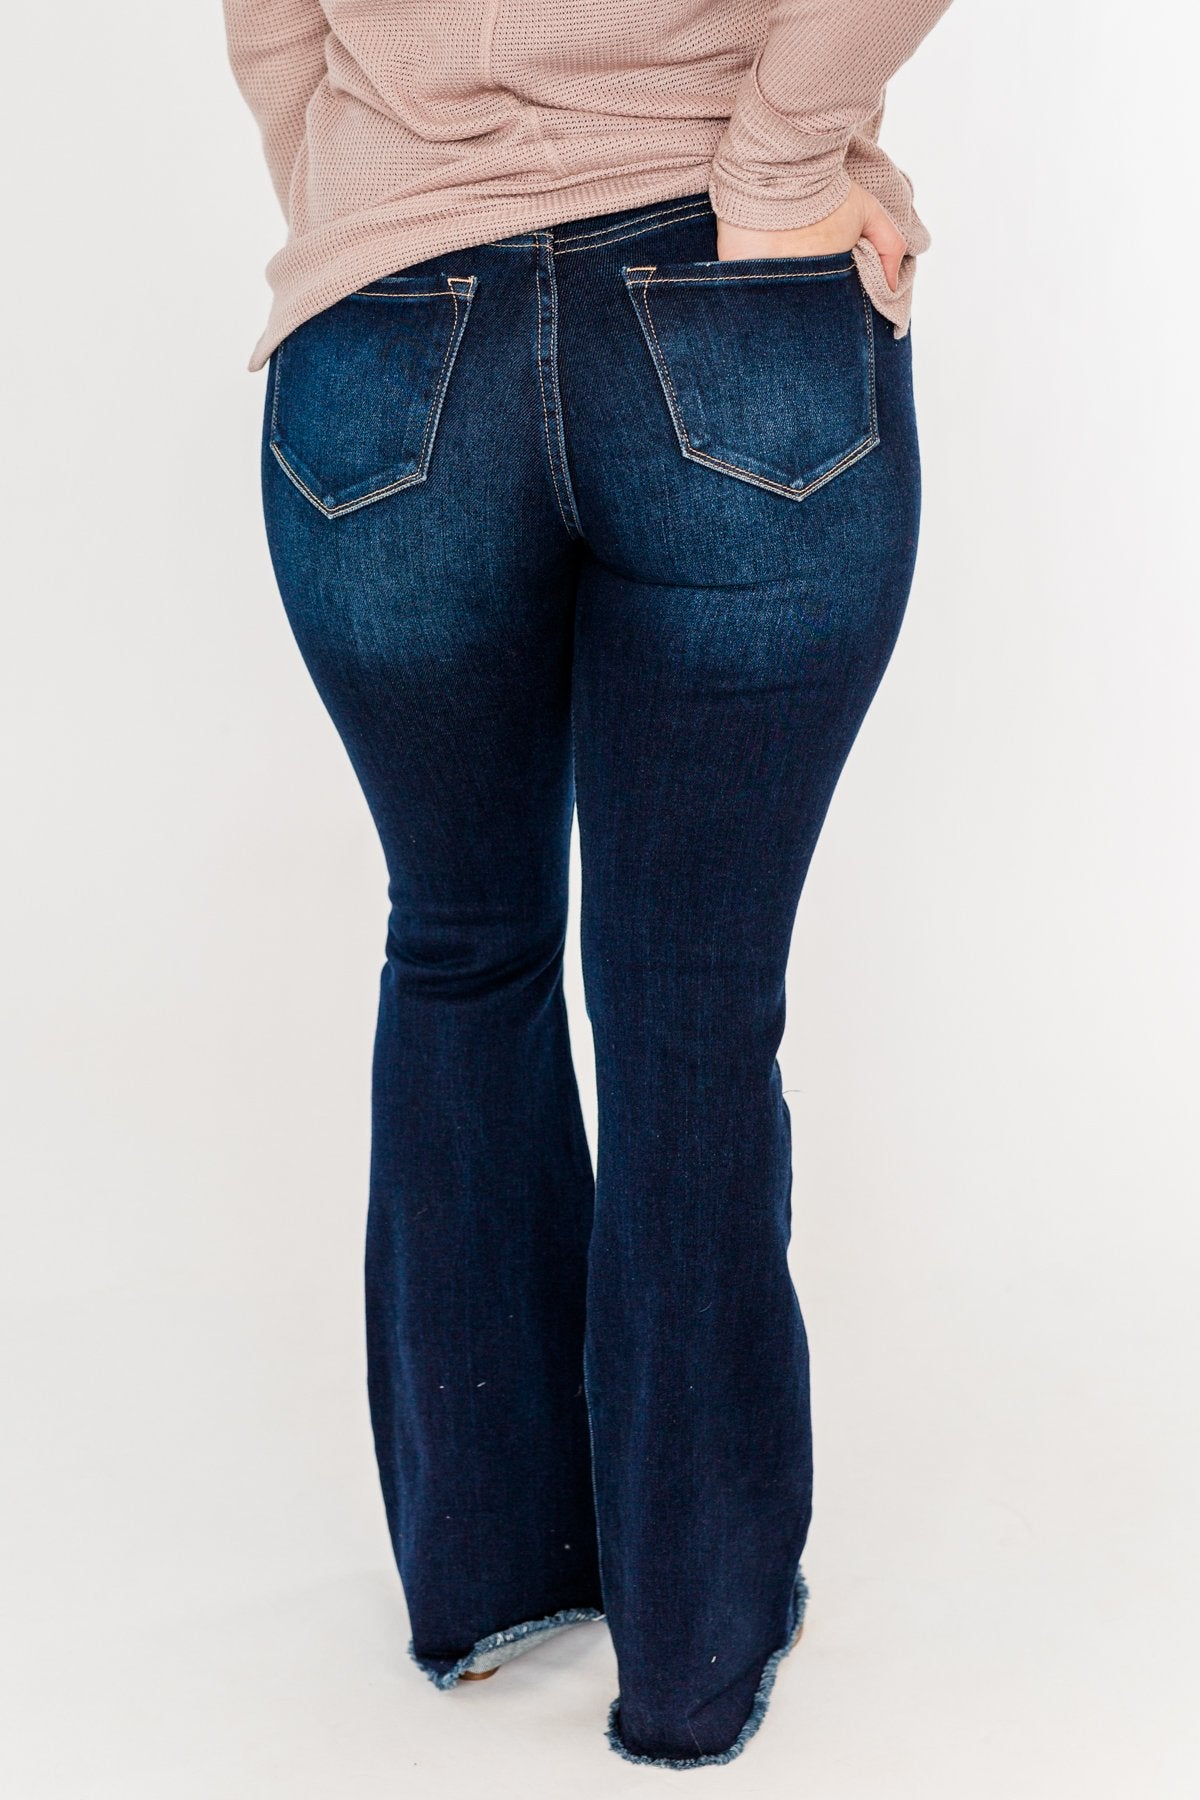 KanCan High Rise Flare Bottom Jeans- Talia Wash